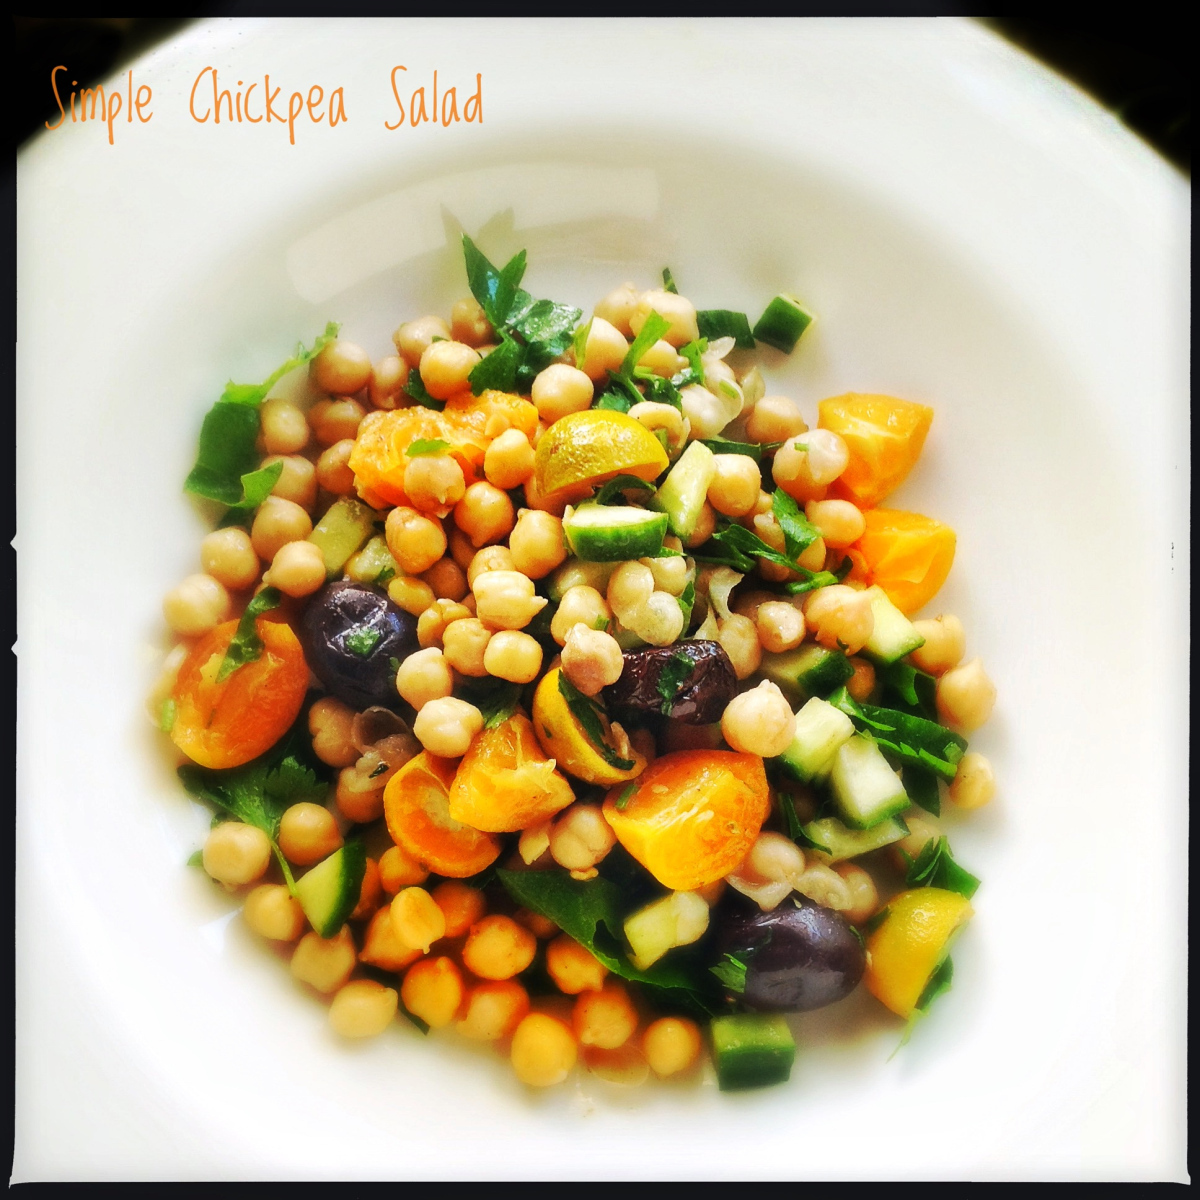 Another Very Simple Chickpea Salad with Olives